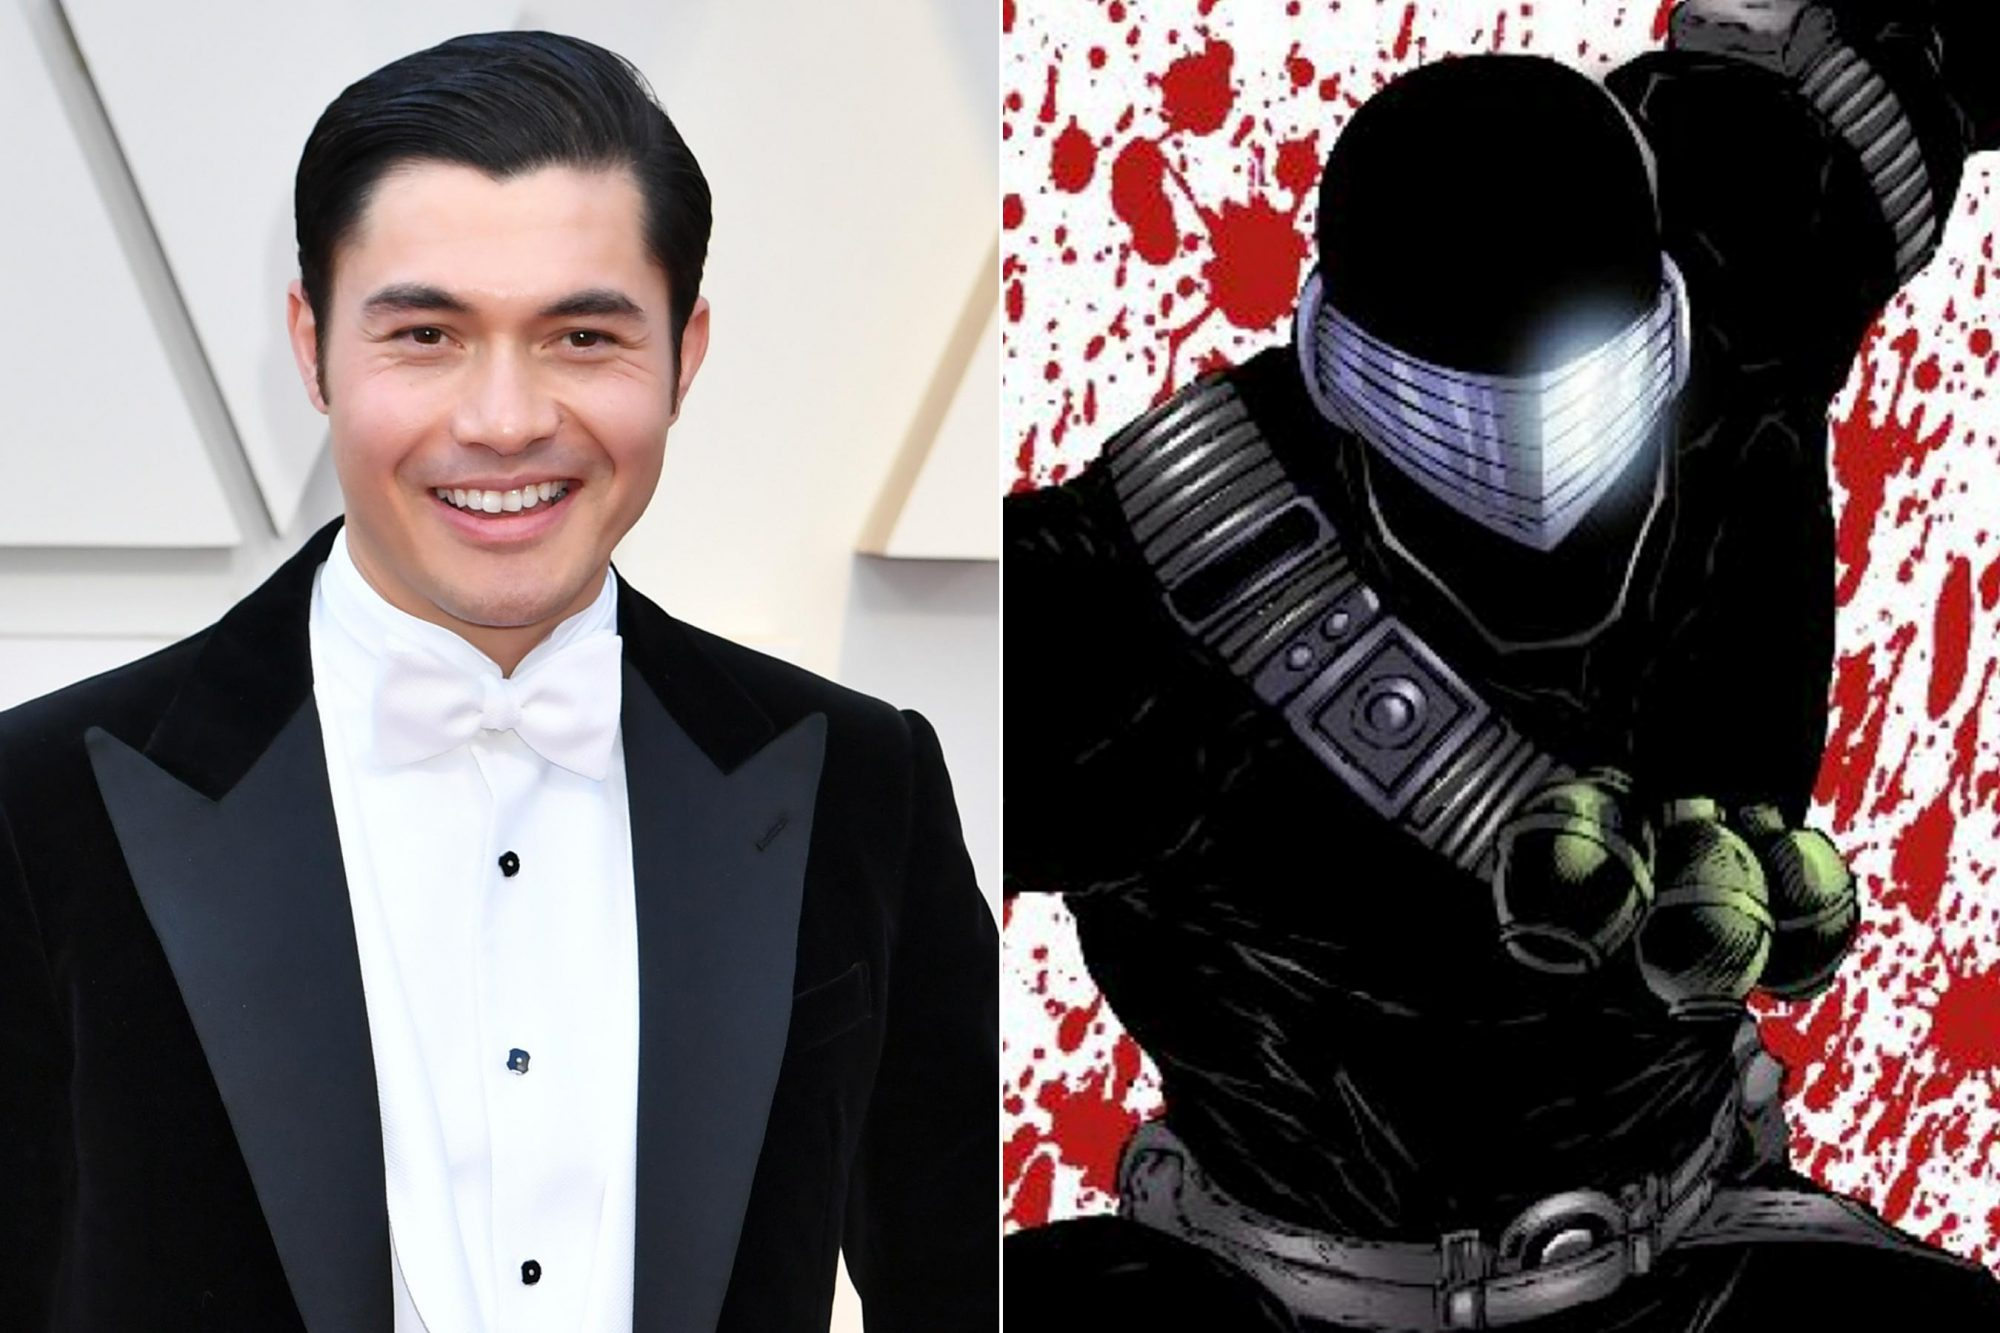 HOLLYWOOD, CA - FEBRUARY 24: Henry Golding attends the 91st Annual Academy Awards at Hollywood and Highland on February 24, 2019 in Hollywood, California. (Photo by Jeff Kravitz/FilmMagic) G.I. Joe comic cover Snake Eyes CR: IDW